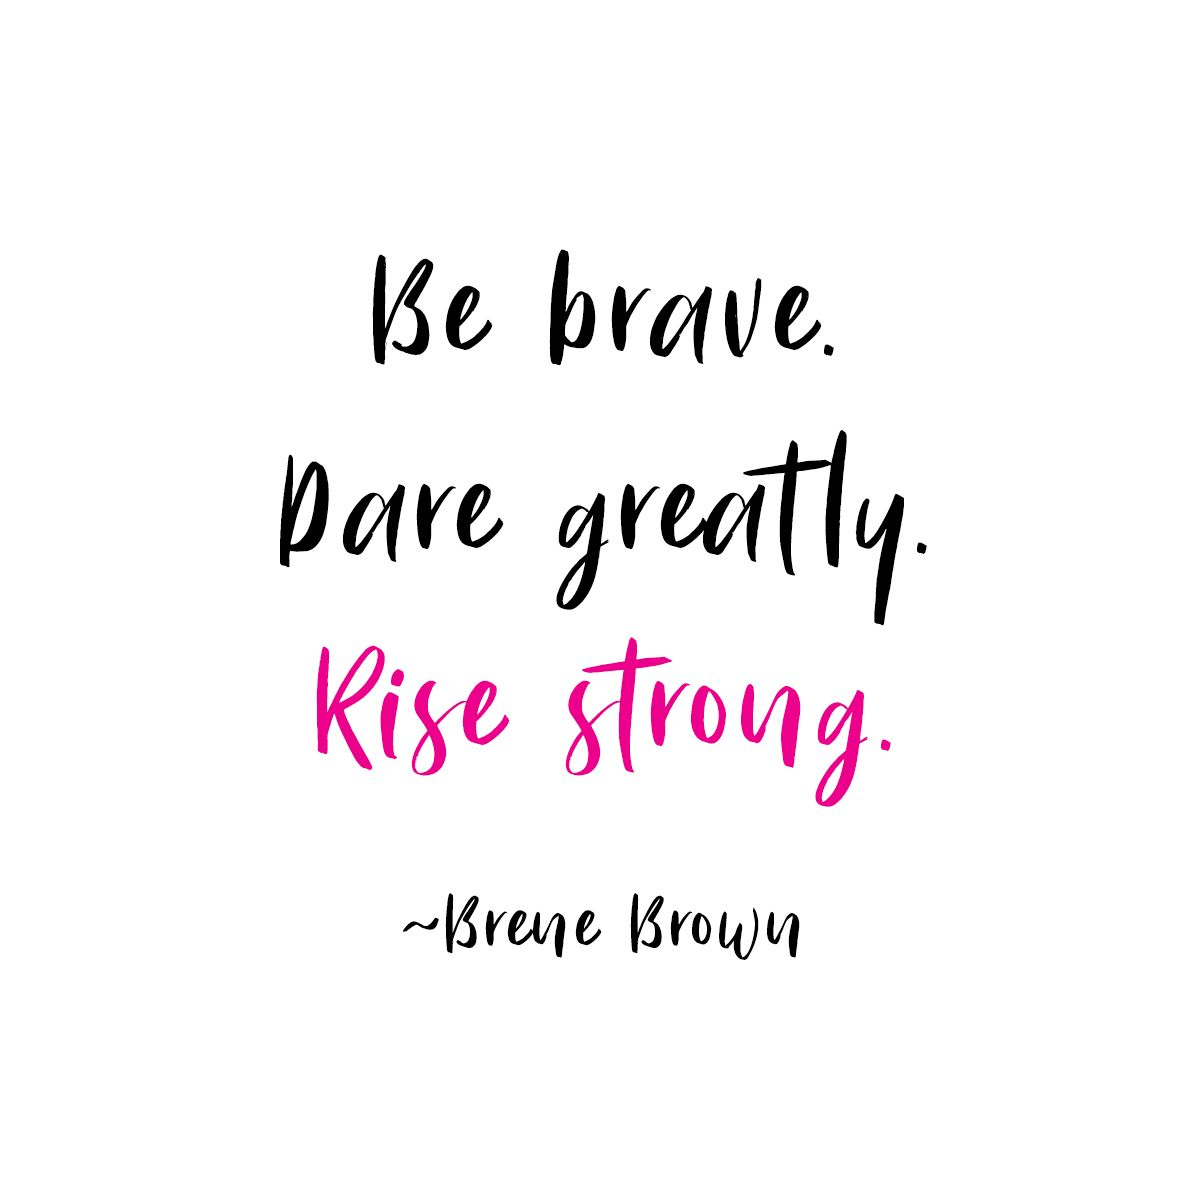 Be brave. Dare greatly. Rise Strong. #inspiration #quote #